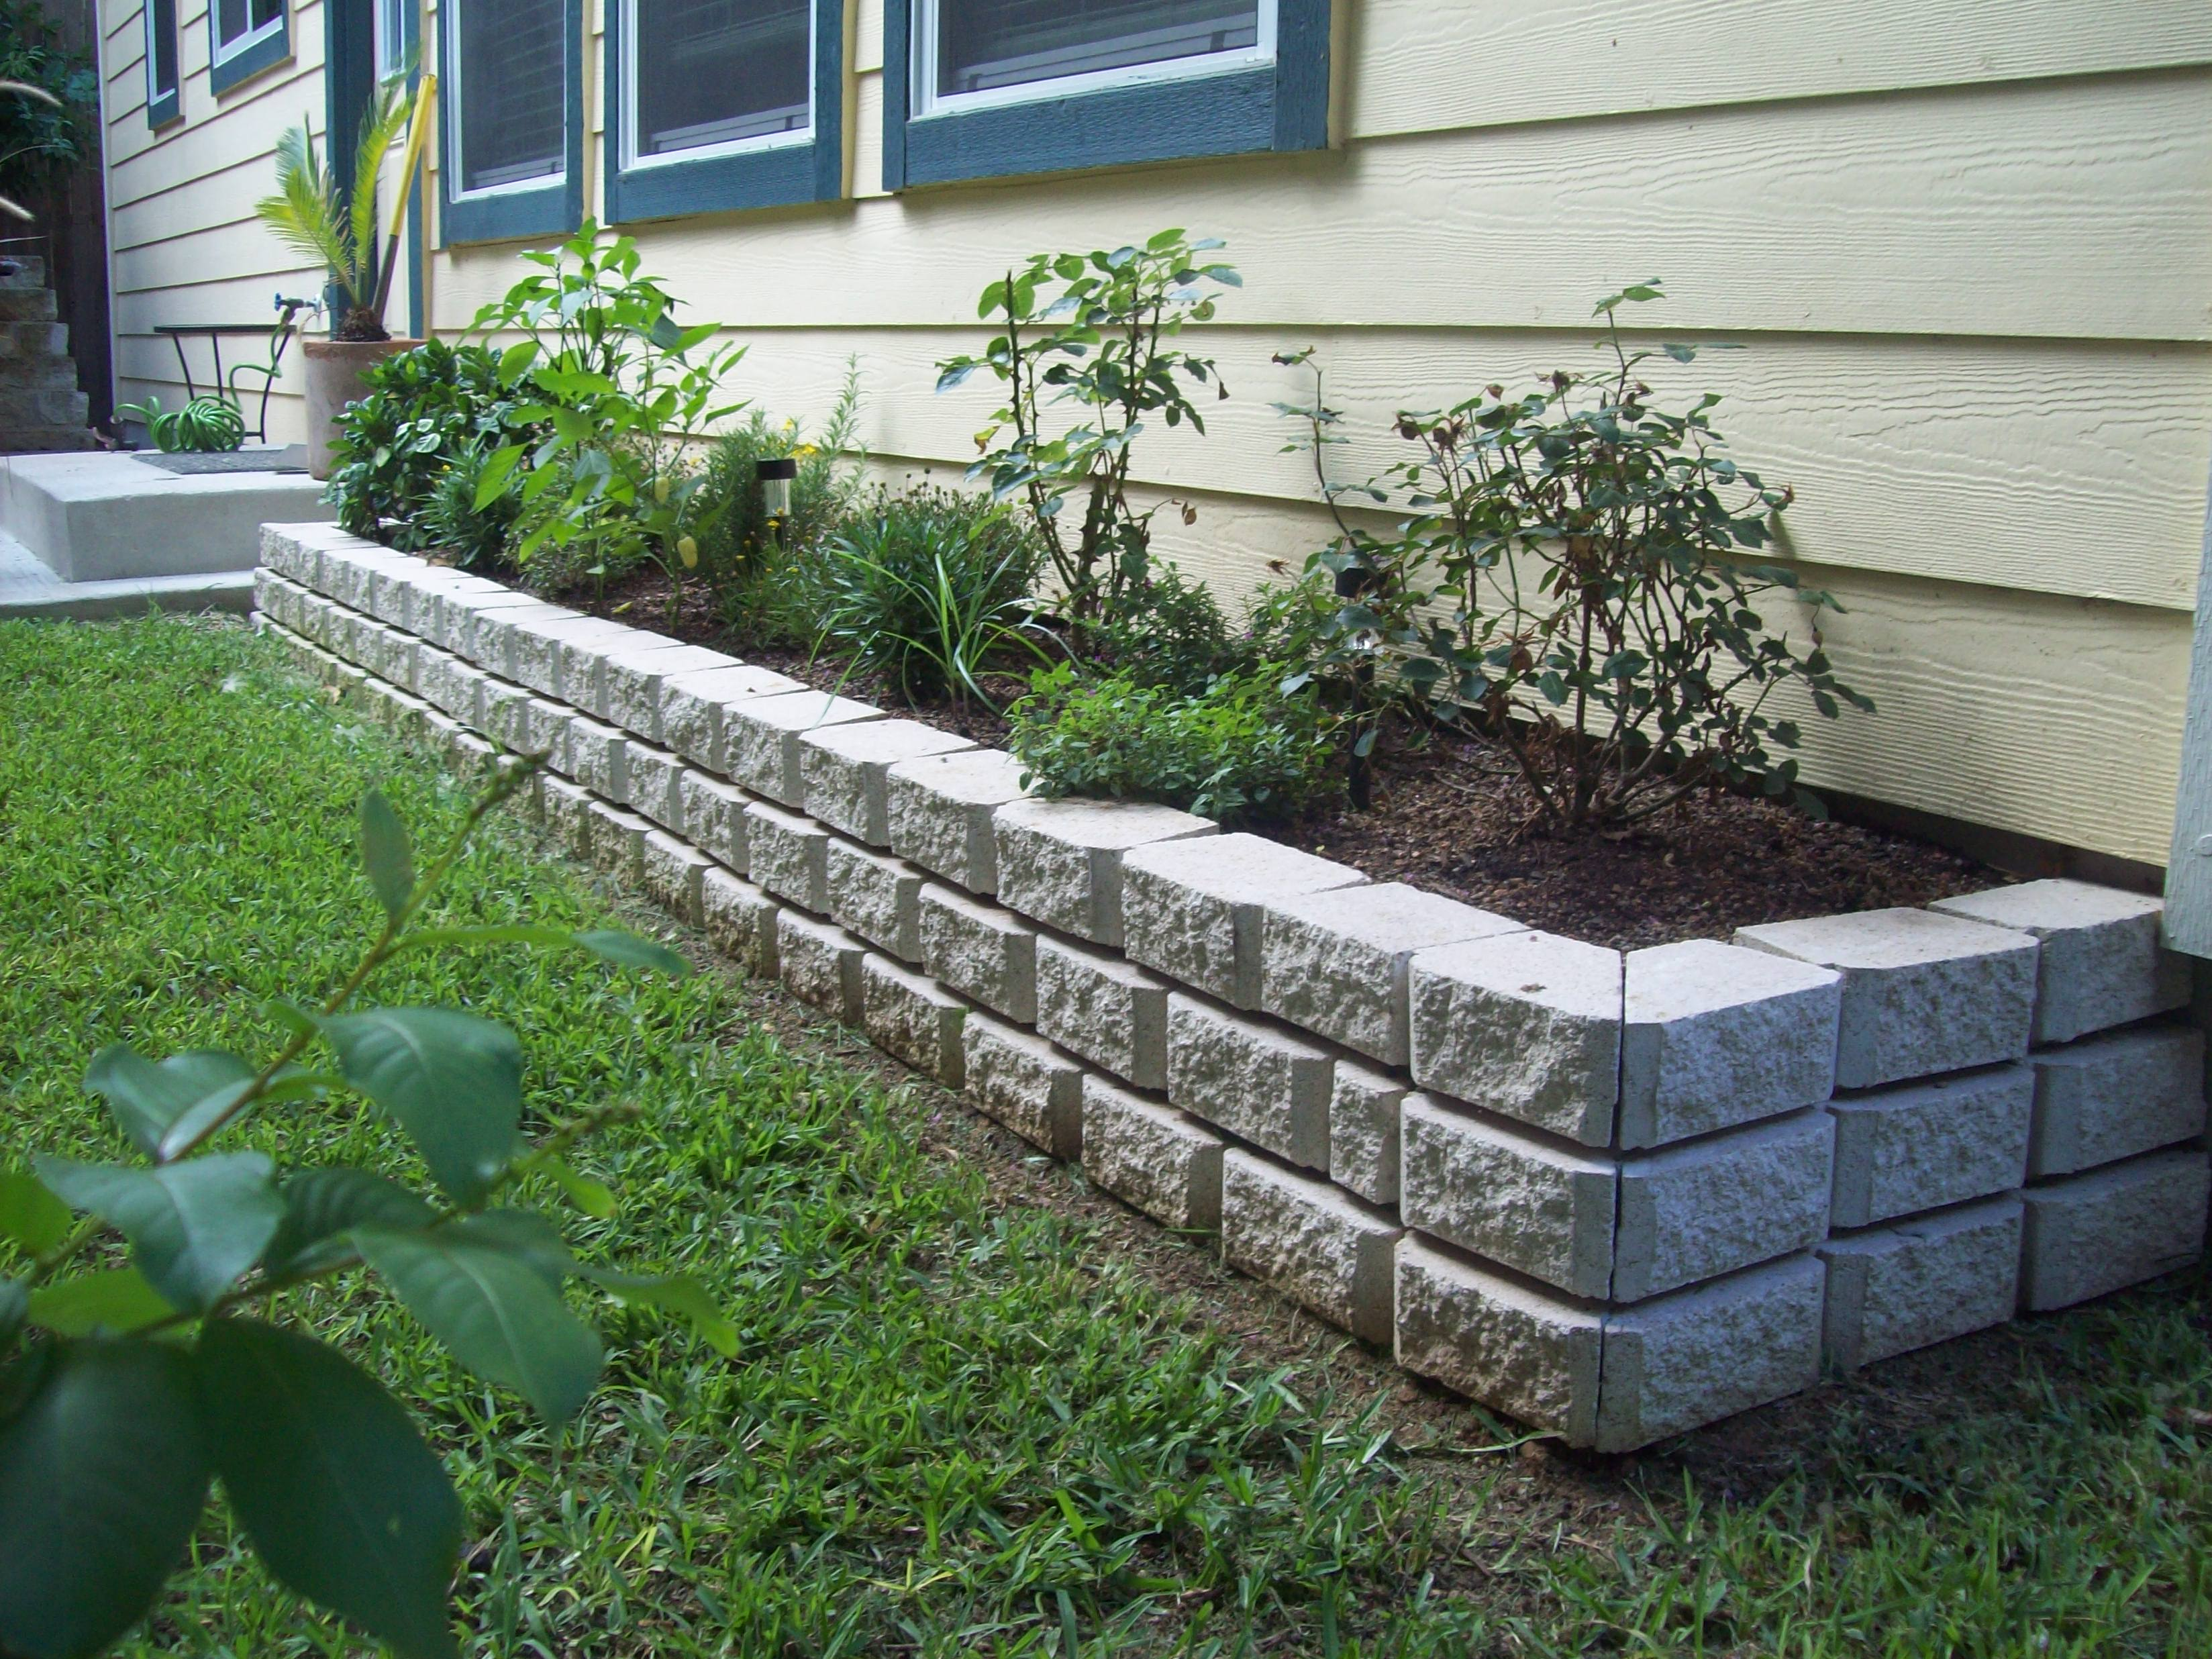 Stone Flower Bed : of three layers of white stone, and filled with rich soil, this bed ...